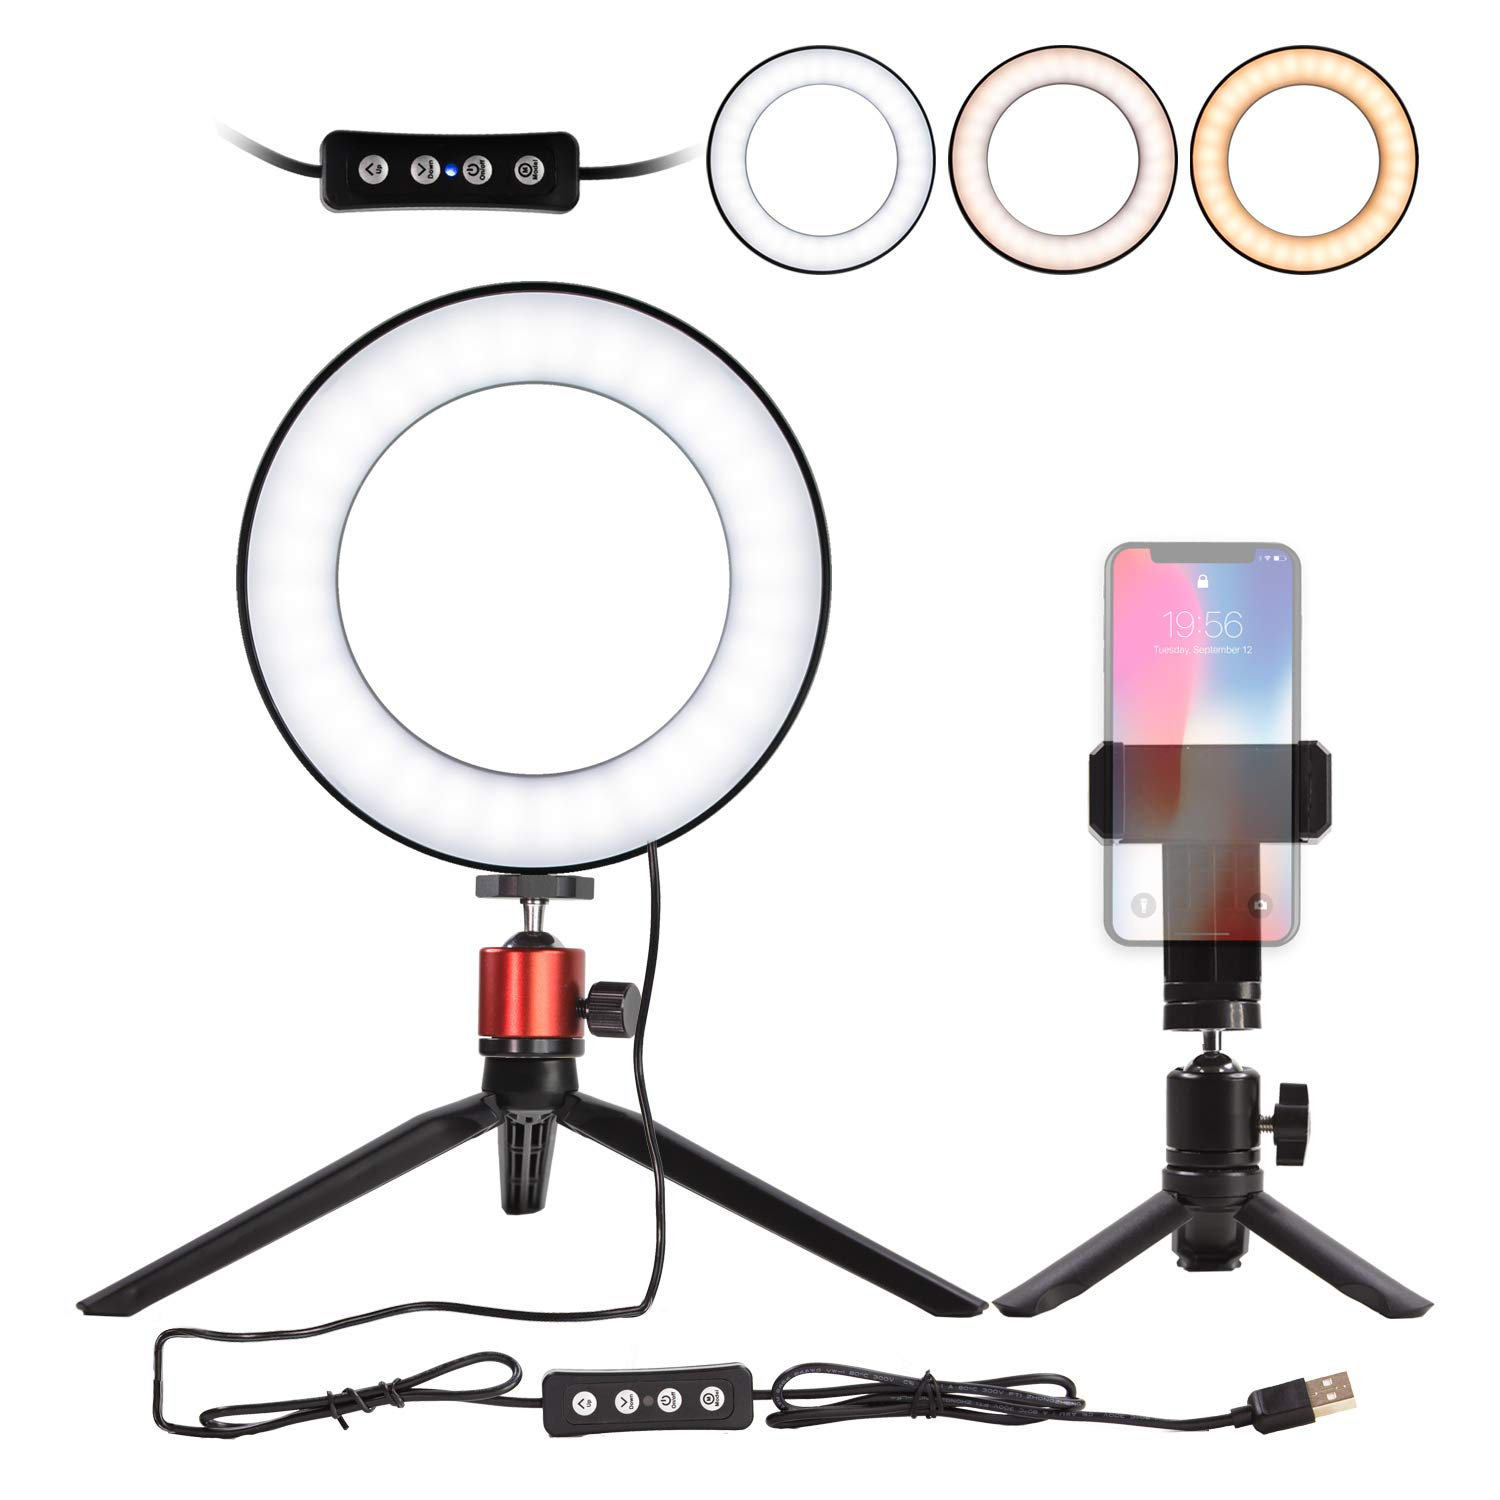 Nugilla LED Ring Light 6'' with Tripod Stand for YouTube Video and Live Stream/Makeup, Mini LED Camera Light with Cell Phone Holder Desktop LED Lamp with 3 Light Modes & 11 Brightness Level